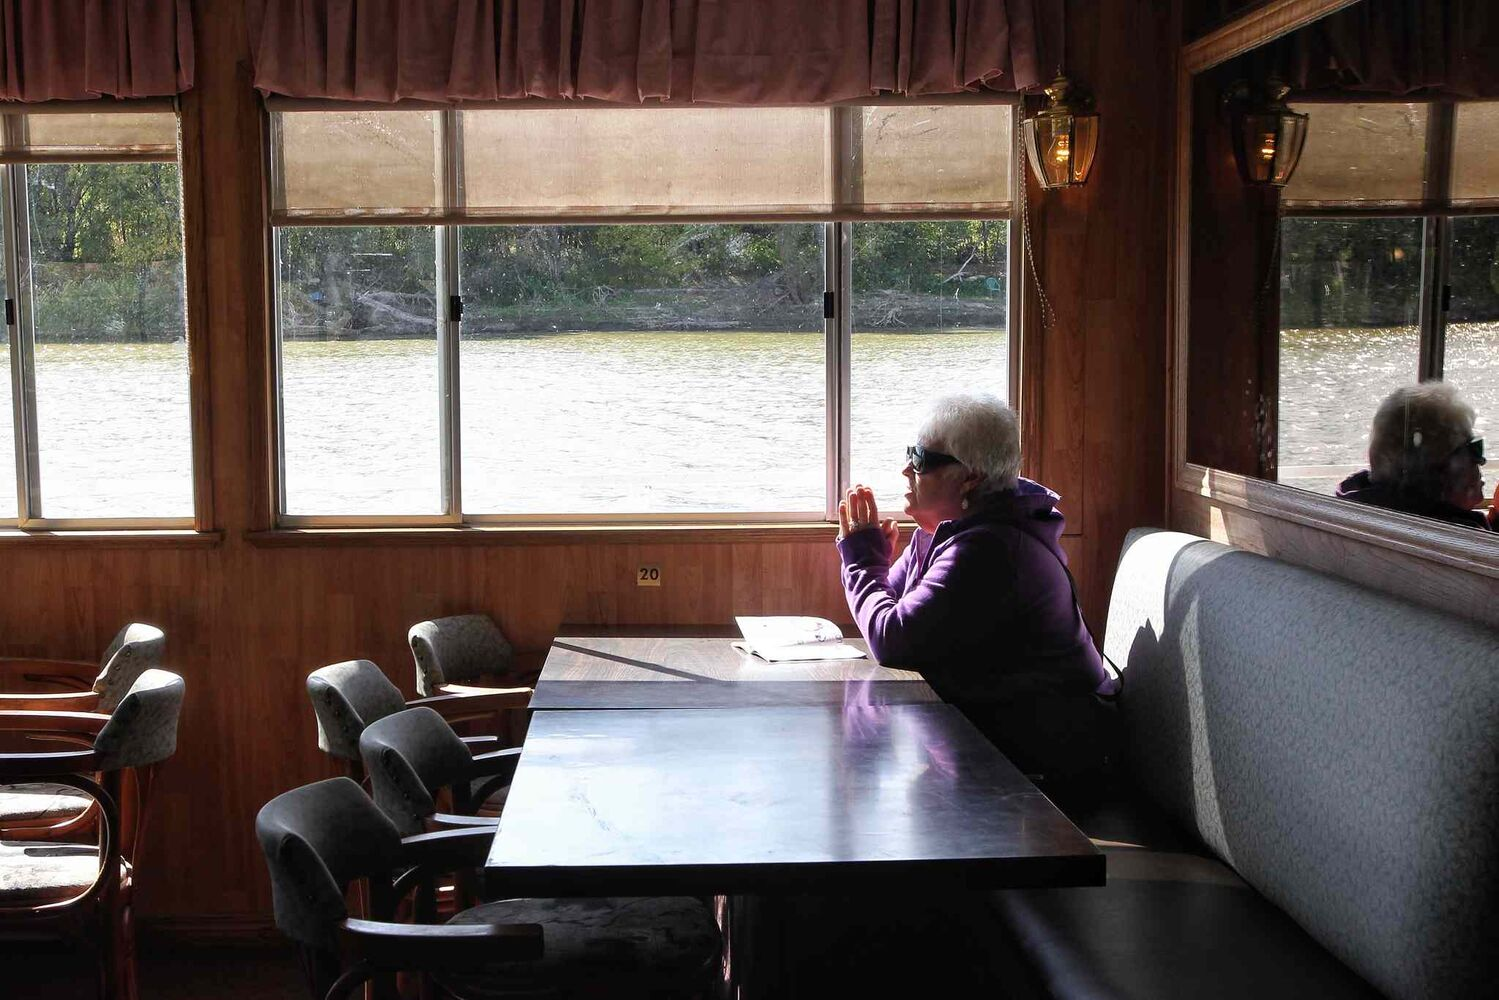 The Paddlewheel Queen cruised the Red River for the last time this year. (Mike Deal / Winnipeg Free Press)